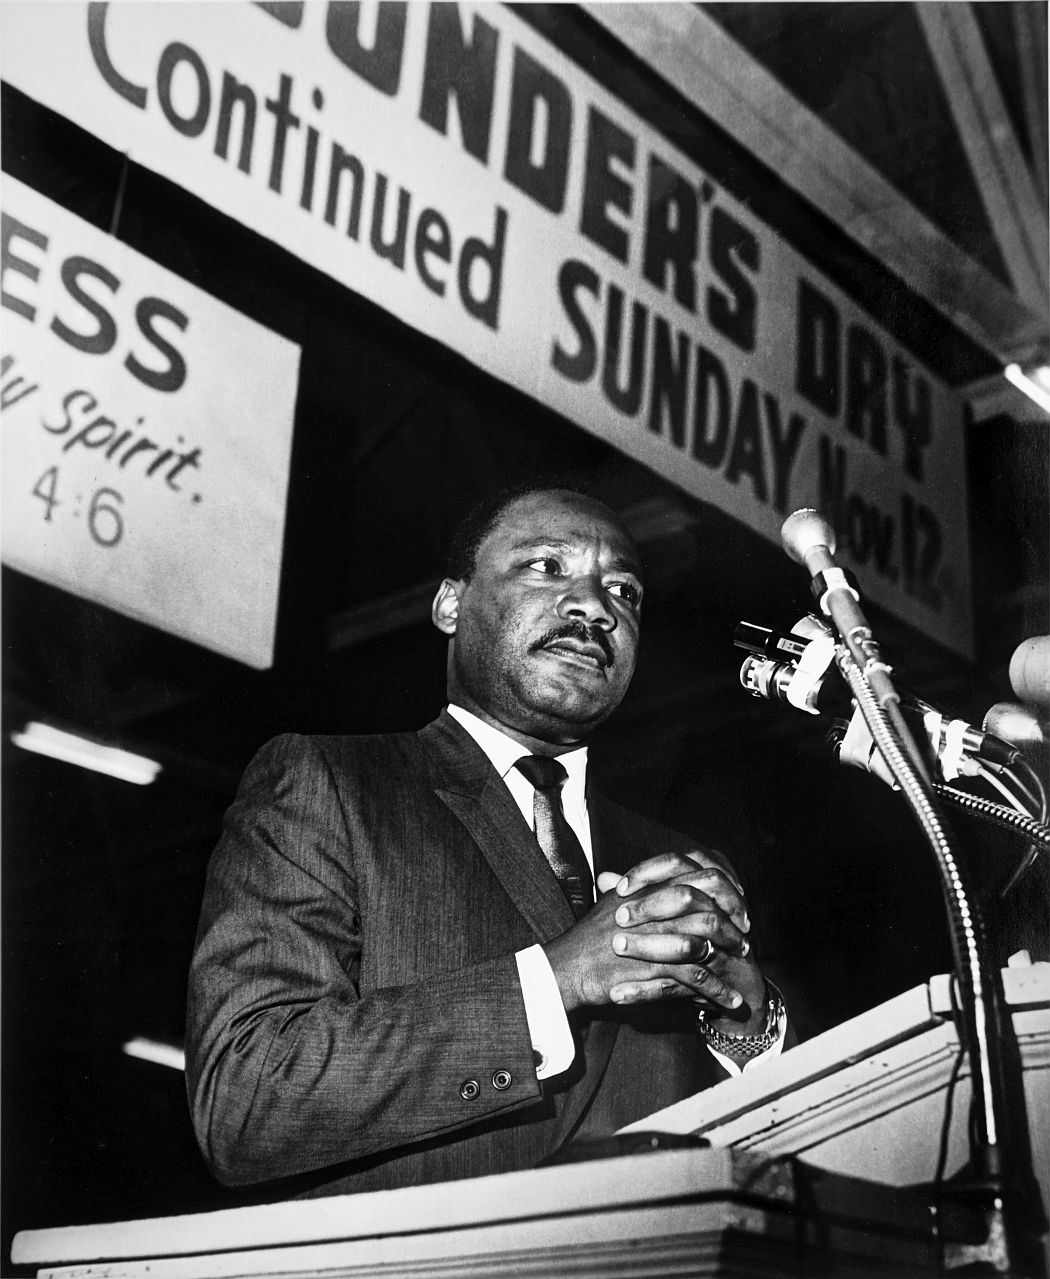 Ernest C. Withers, American, 1922 – 2007, Martin Luther King, Jr. – Speech at the Mason Temple, April 3, 1968, Gelatin silver print, printed from original negative in 1999, Memphis Brooks Museum of Art purchase with funds provided by Ernest and Dorothy Withers, Panopticon Gallery, Inc., Waltham, MA, Landon and Carol Butler, The Deupree Family Foundation, and The Turley Foundation  2005.3.39 © Withers Family Trust